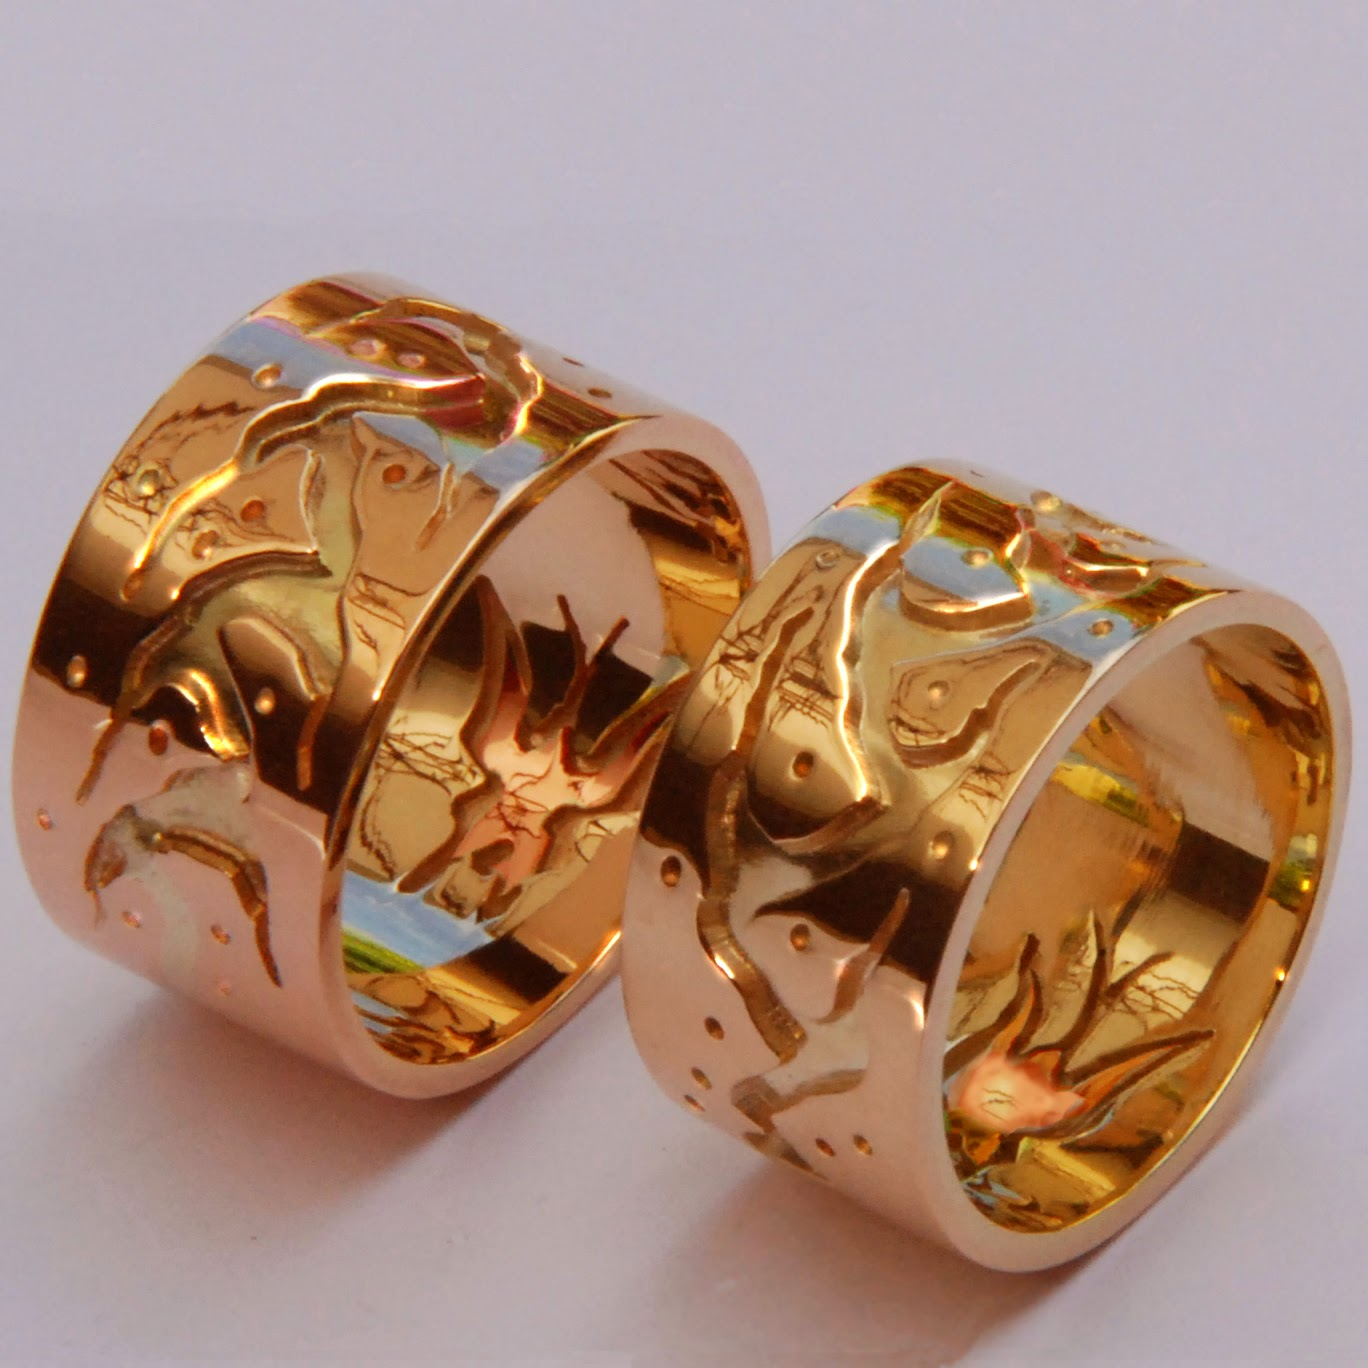 Ojibwe-style wedding rings designed by Zhaawanart Fisher star Creations